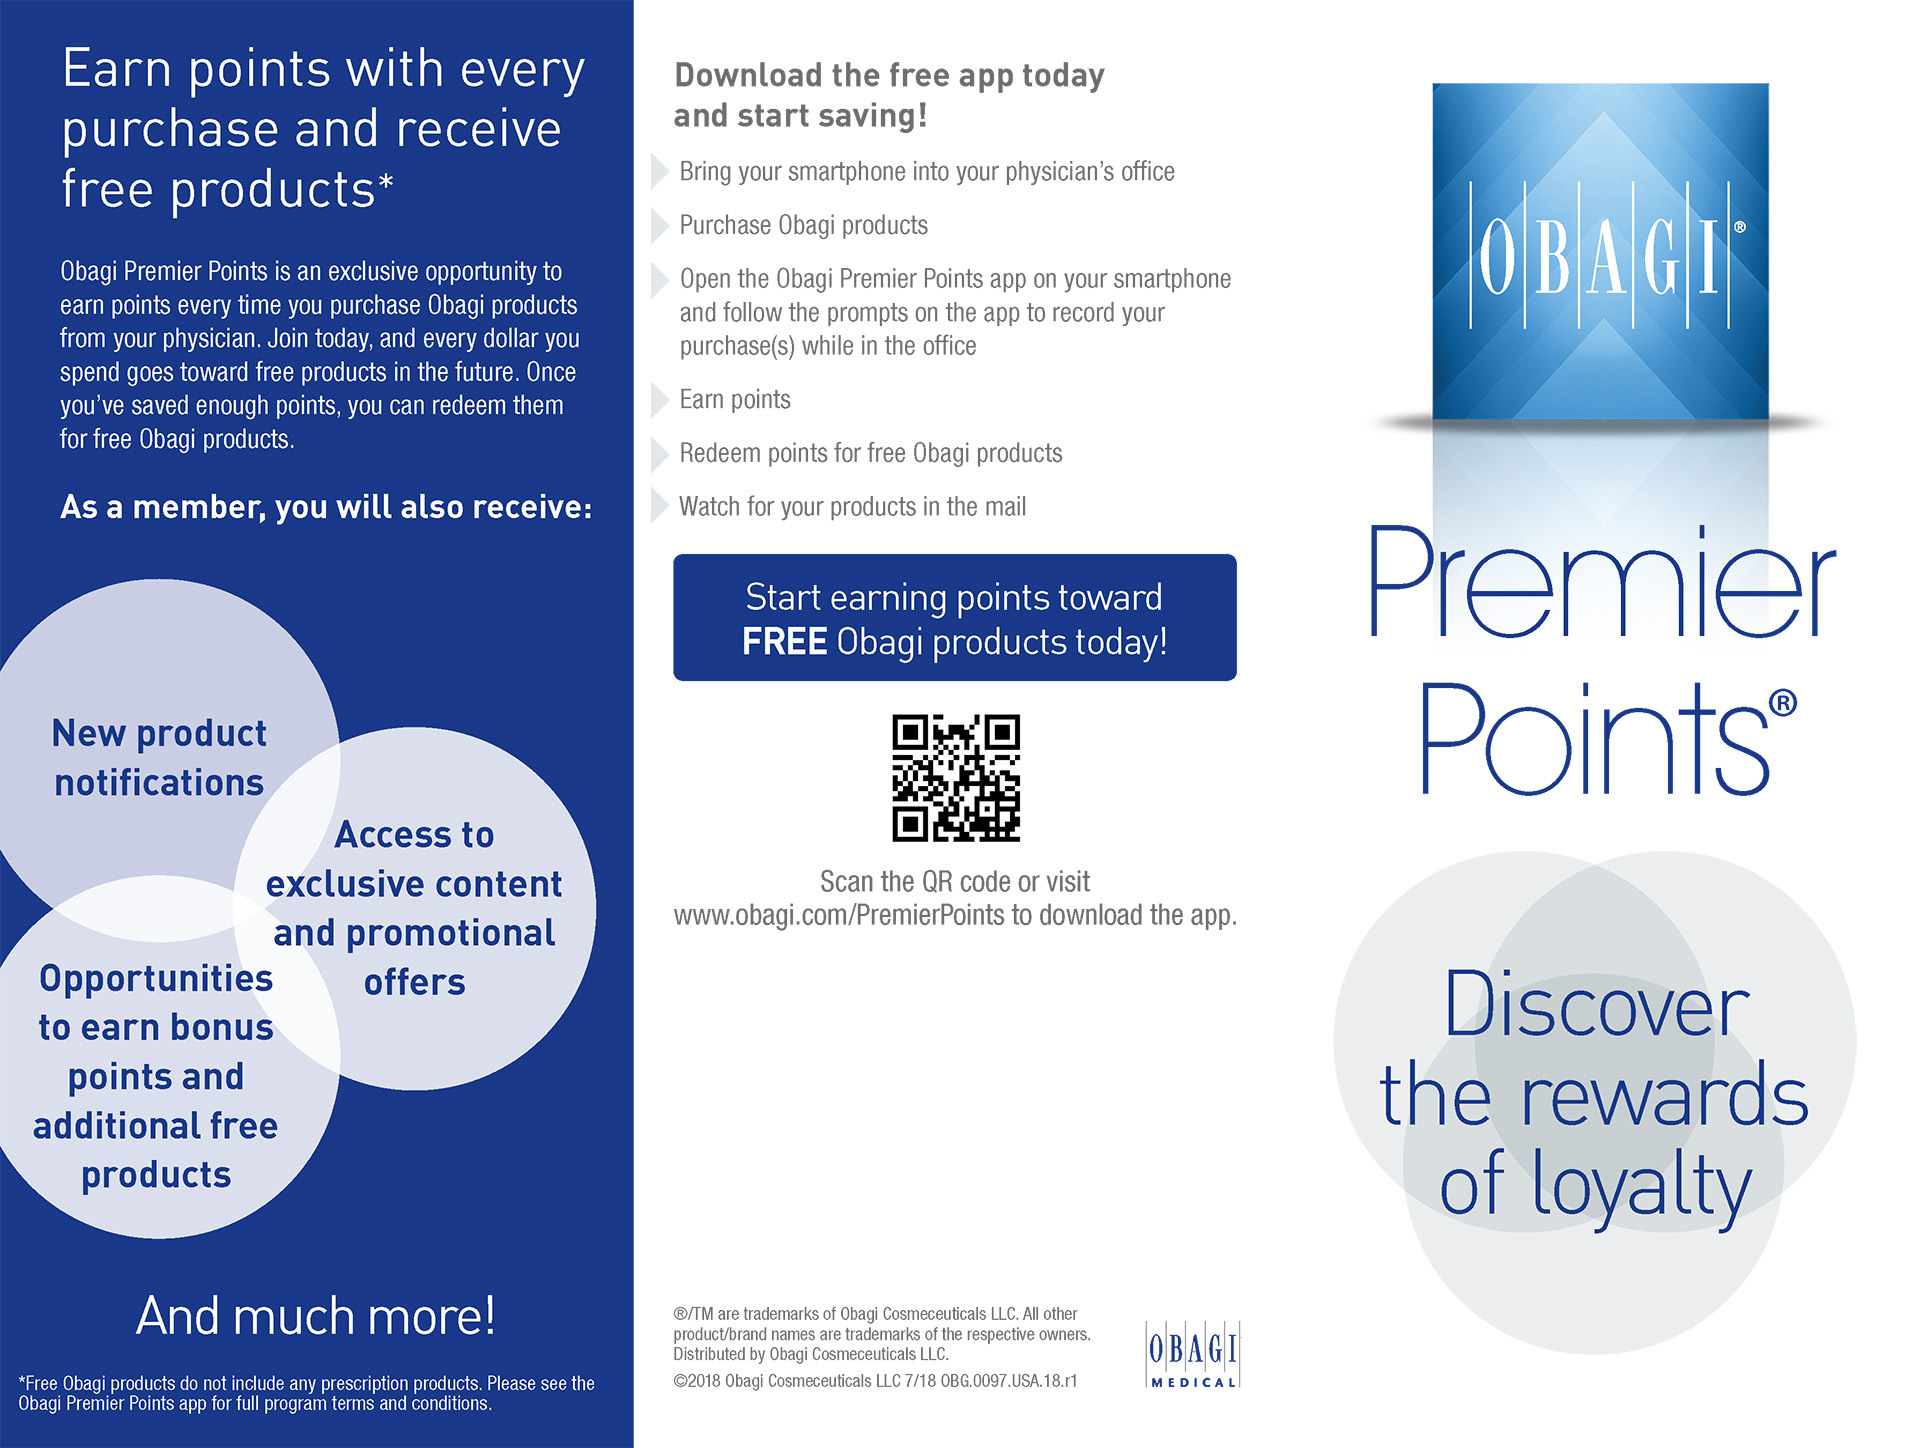 Obagi Premier Points at Neu Look Medical Spa & Skin Center in San Diego California